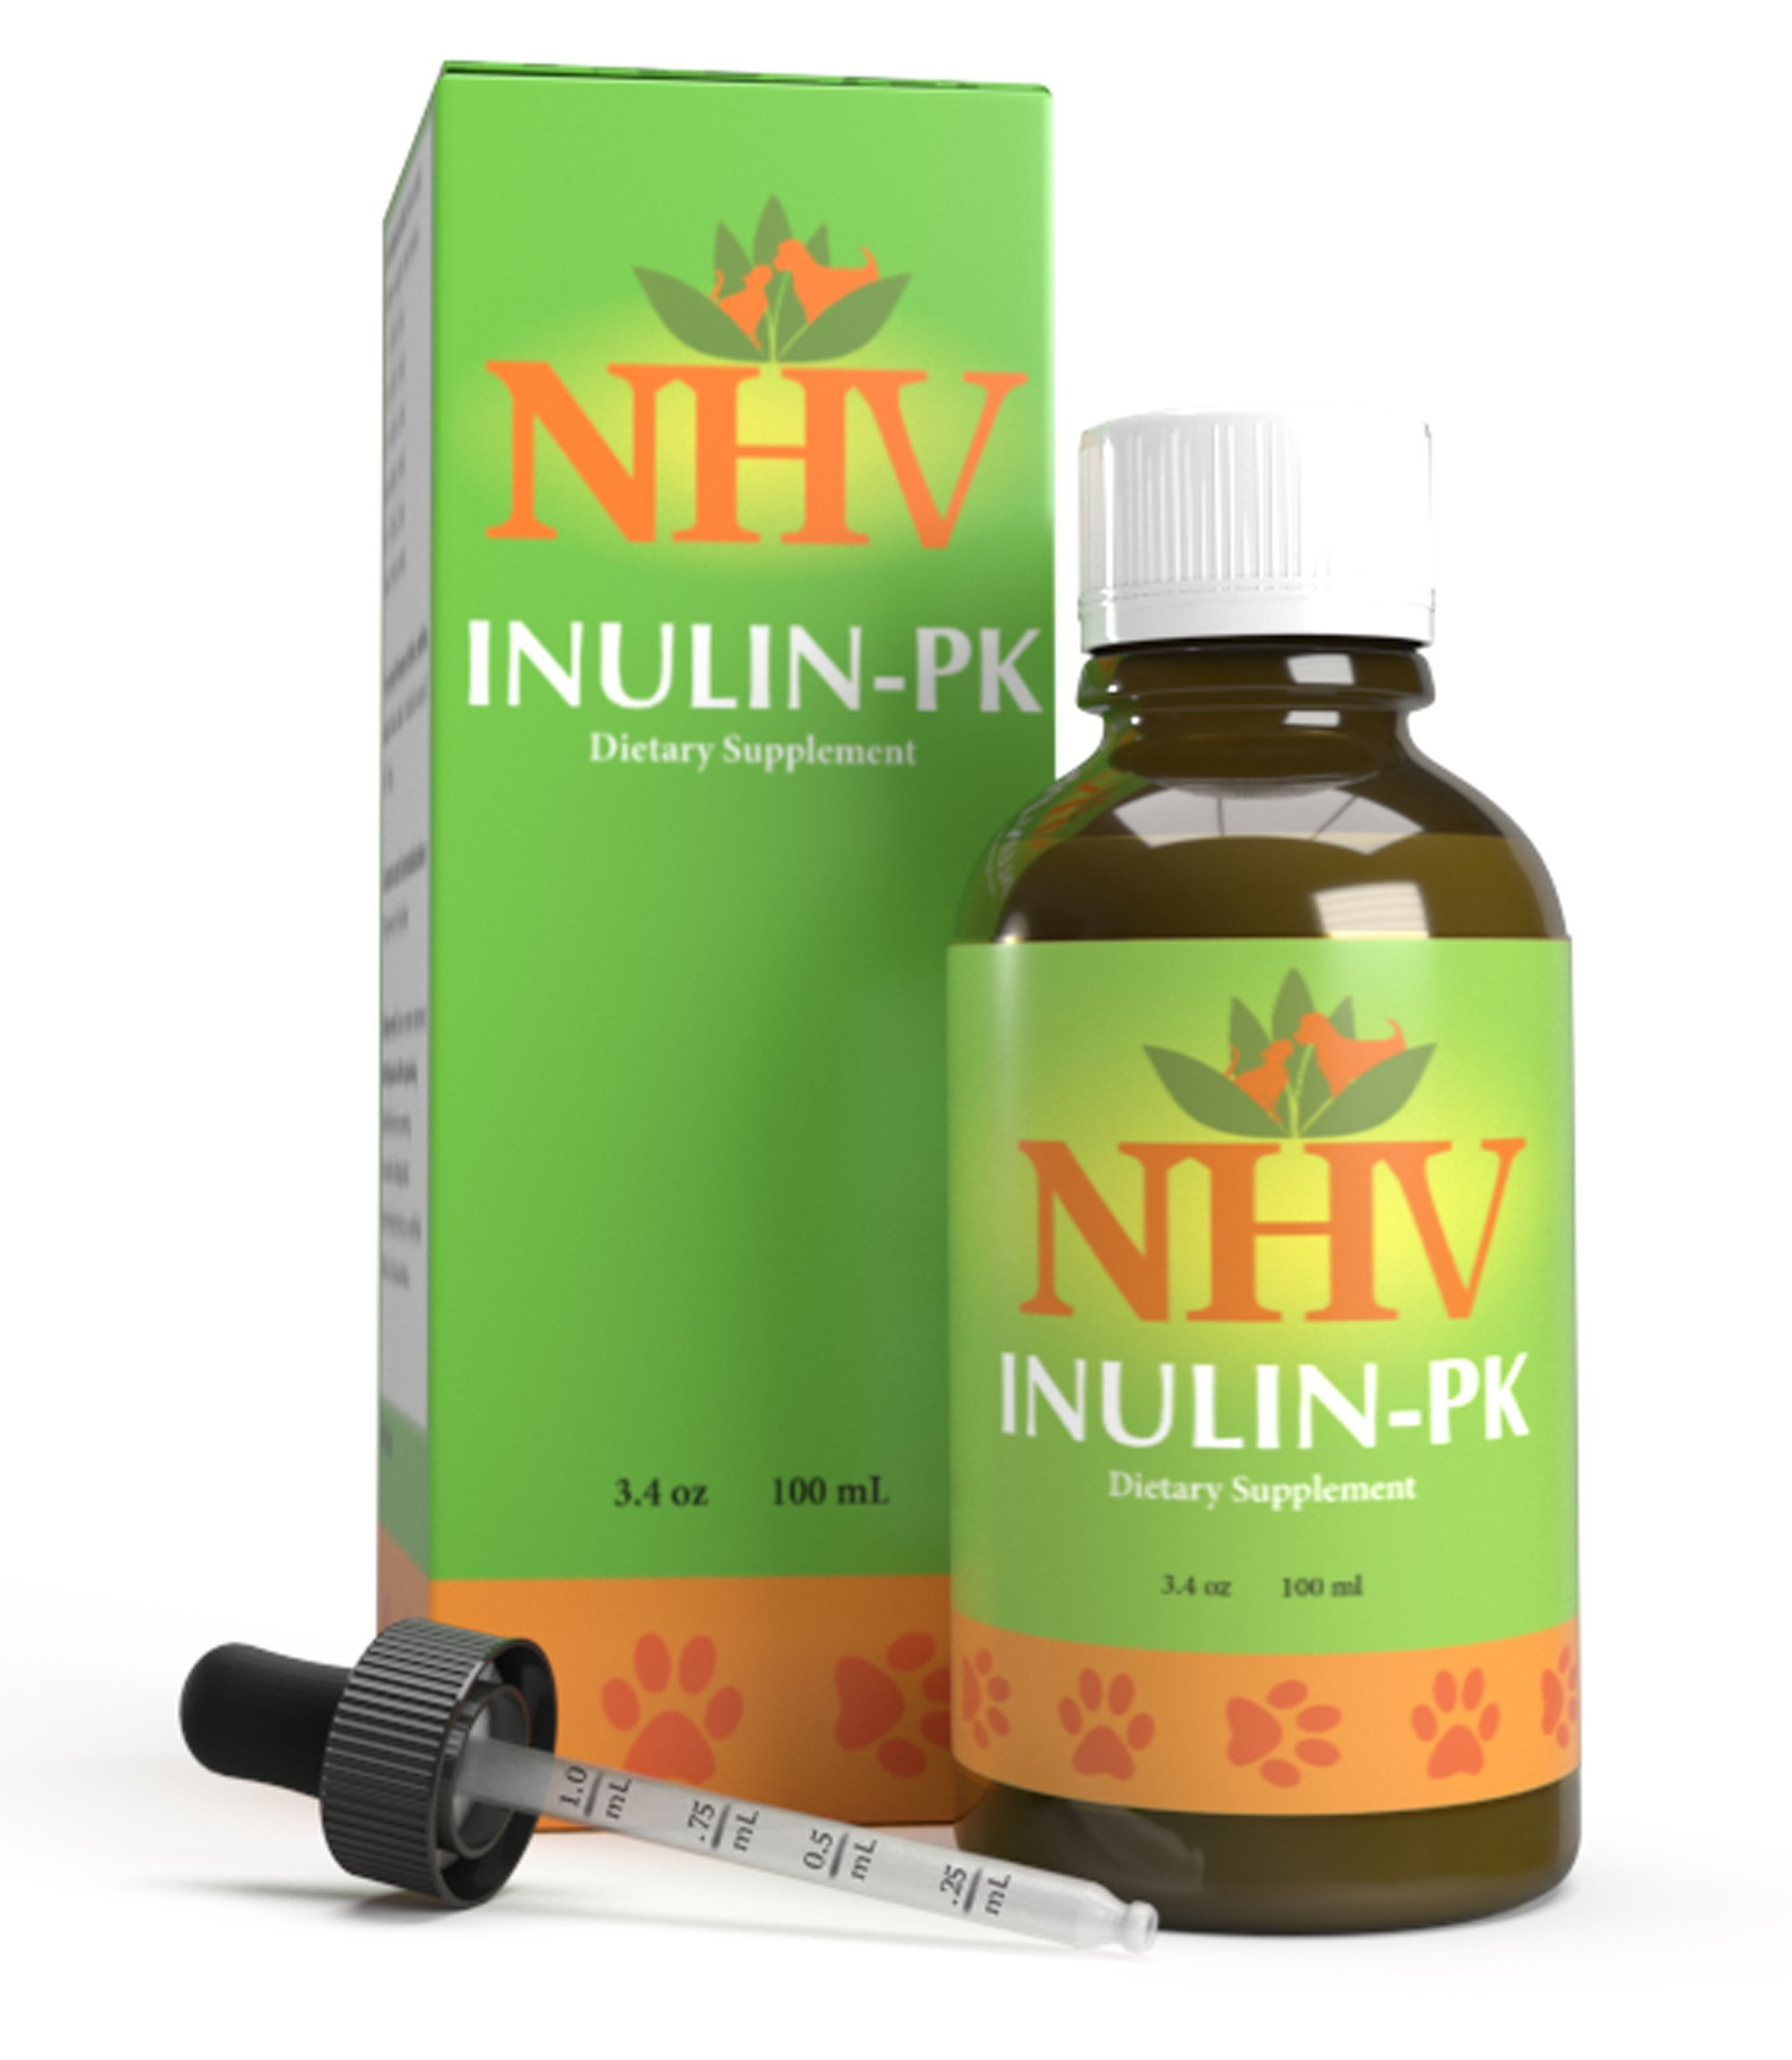 NHV Dewormer for Dogs, Cats, Puppies, Kittens. Vet Approved. All Natural. Safe & Effective